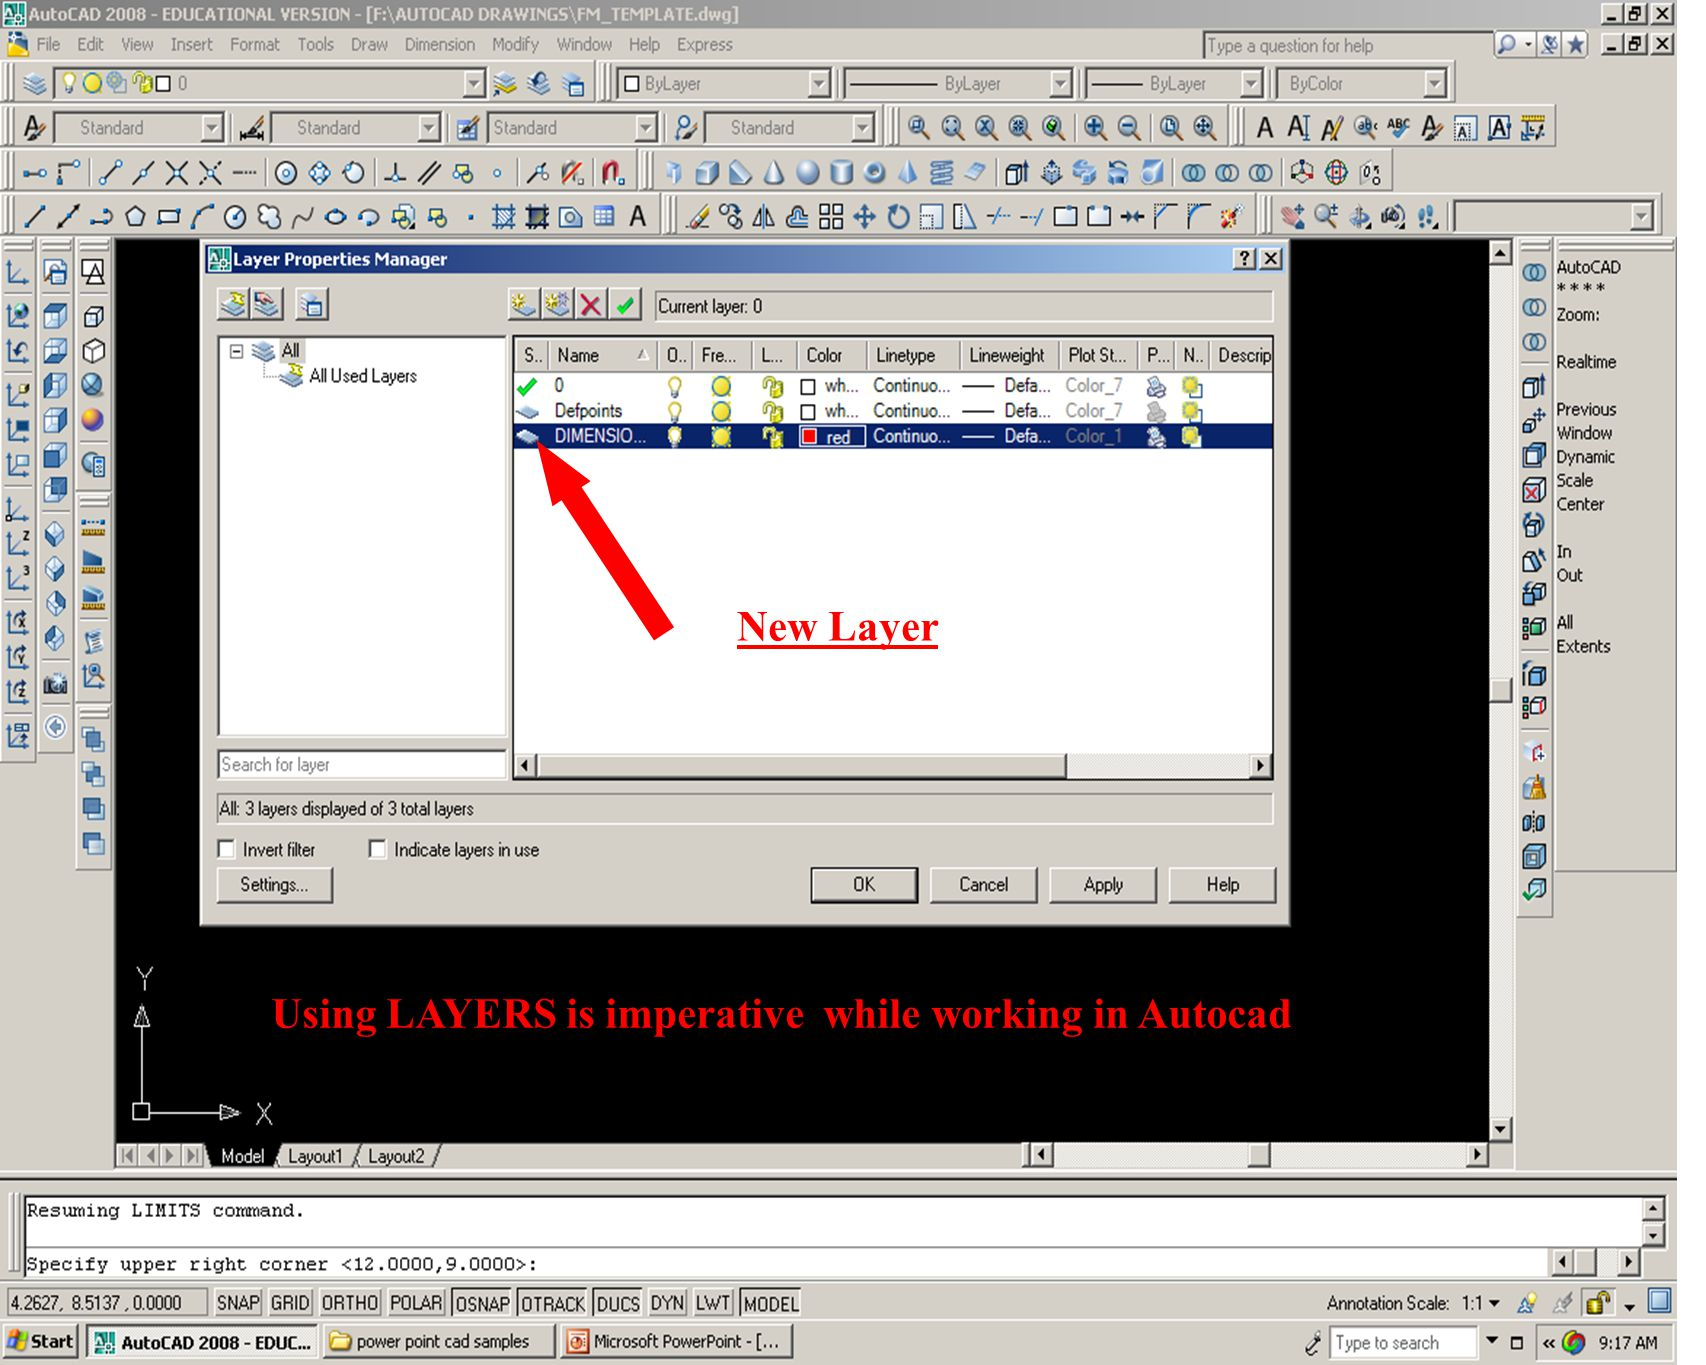 New Layer Using LAYERS is imperative while working in Autocad